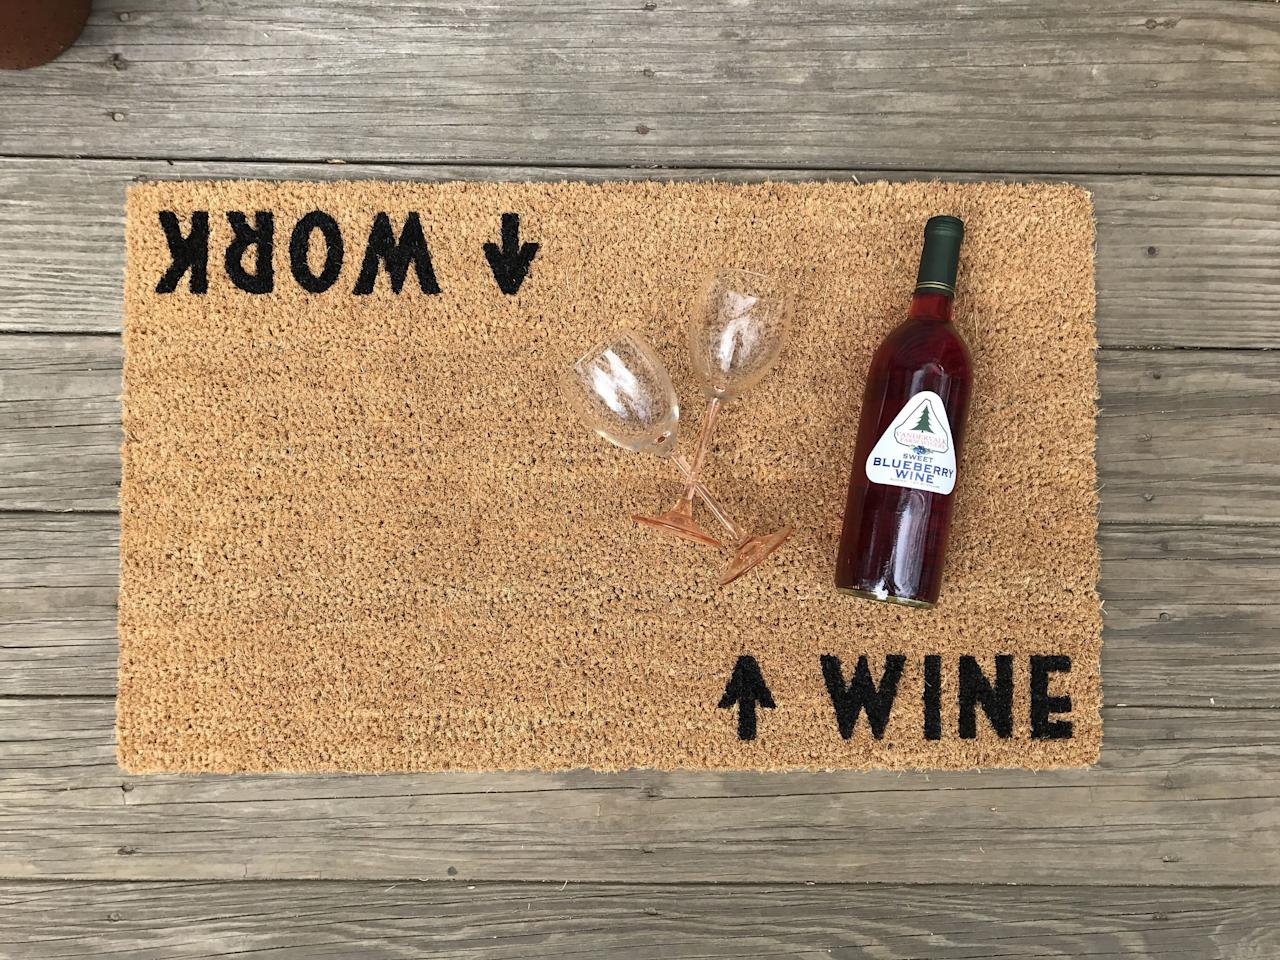 "<p><strong>Etsy</strong></p><p>etsy.com</p><p><strong>Out of Stock</strong></p><p><a rel=""nofollow"" href=""https://www.etsy.com/listing/512015258/wine-work-mat-doormat-perfect"">BUY NOW</a></p><p>Show off your wine-loving personality with this clever doormat that gets almost a little too real.</p>"